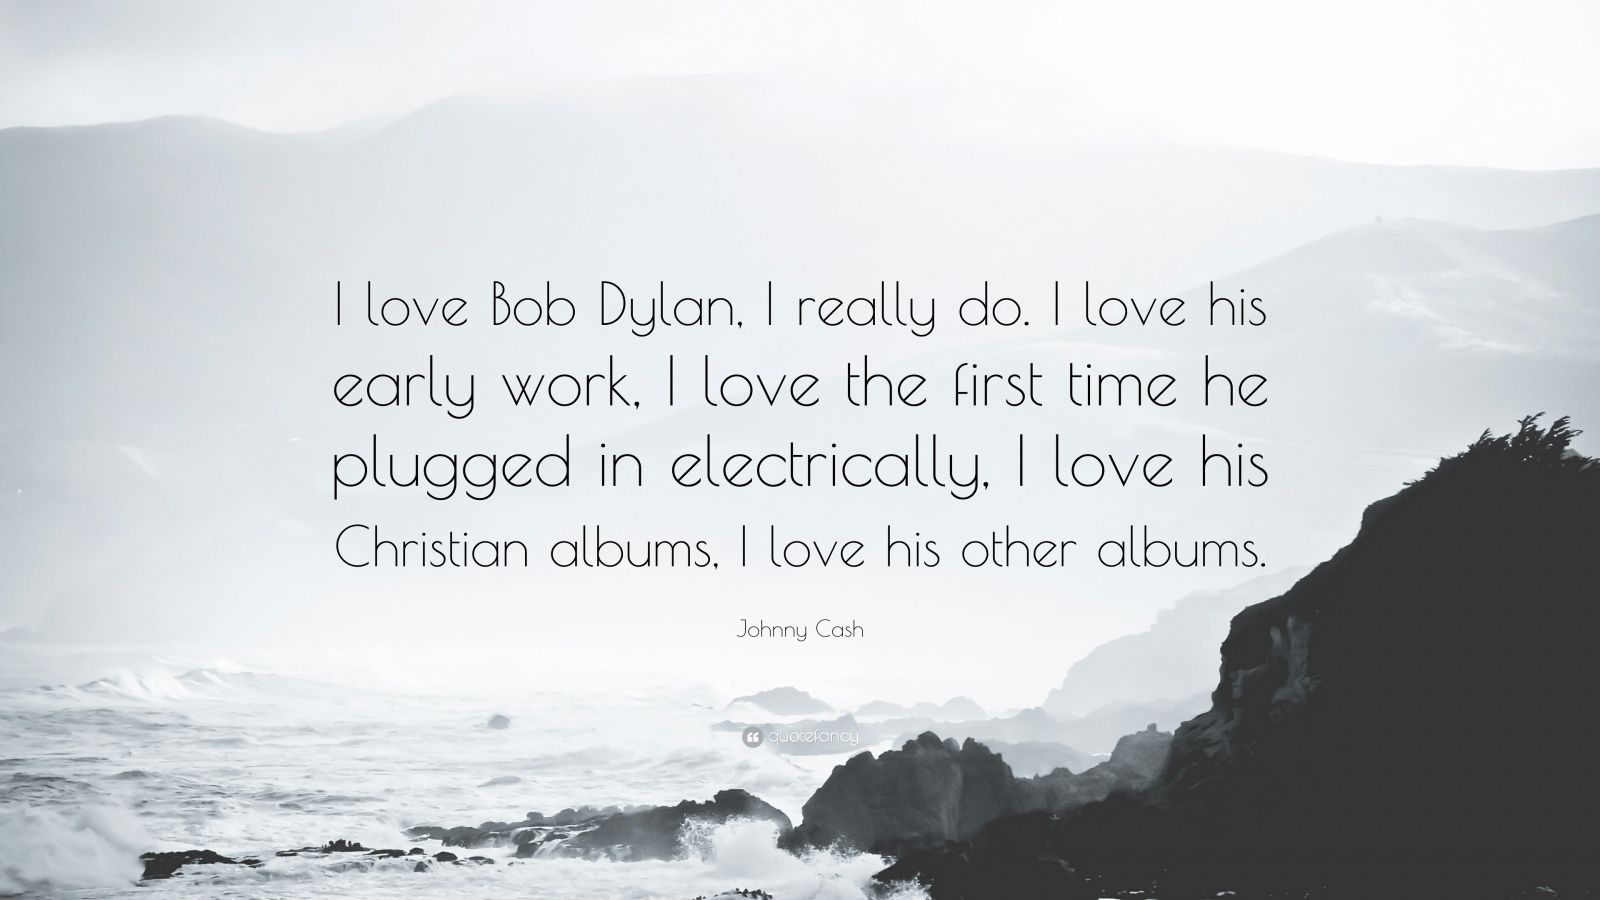 """Johnny Cash Quote: """"I love Bob Dylan, I really do. I love his early work, I love the first time he plugged in electrically, I love his Christian albums, I love his other albums."""""""